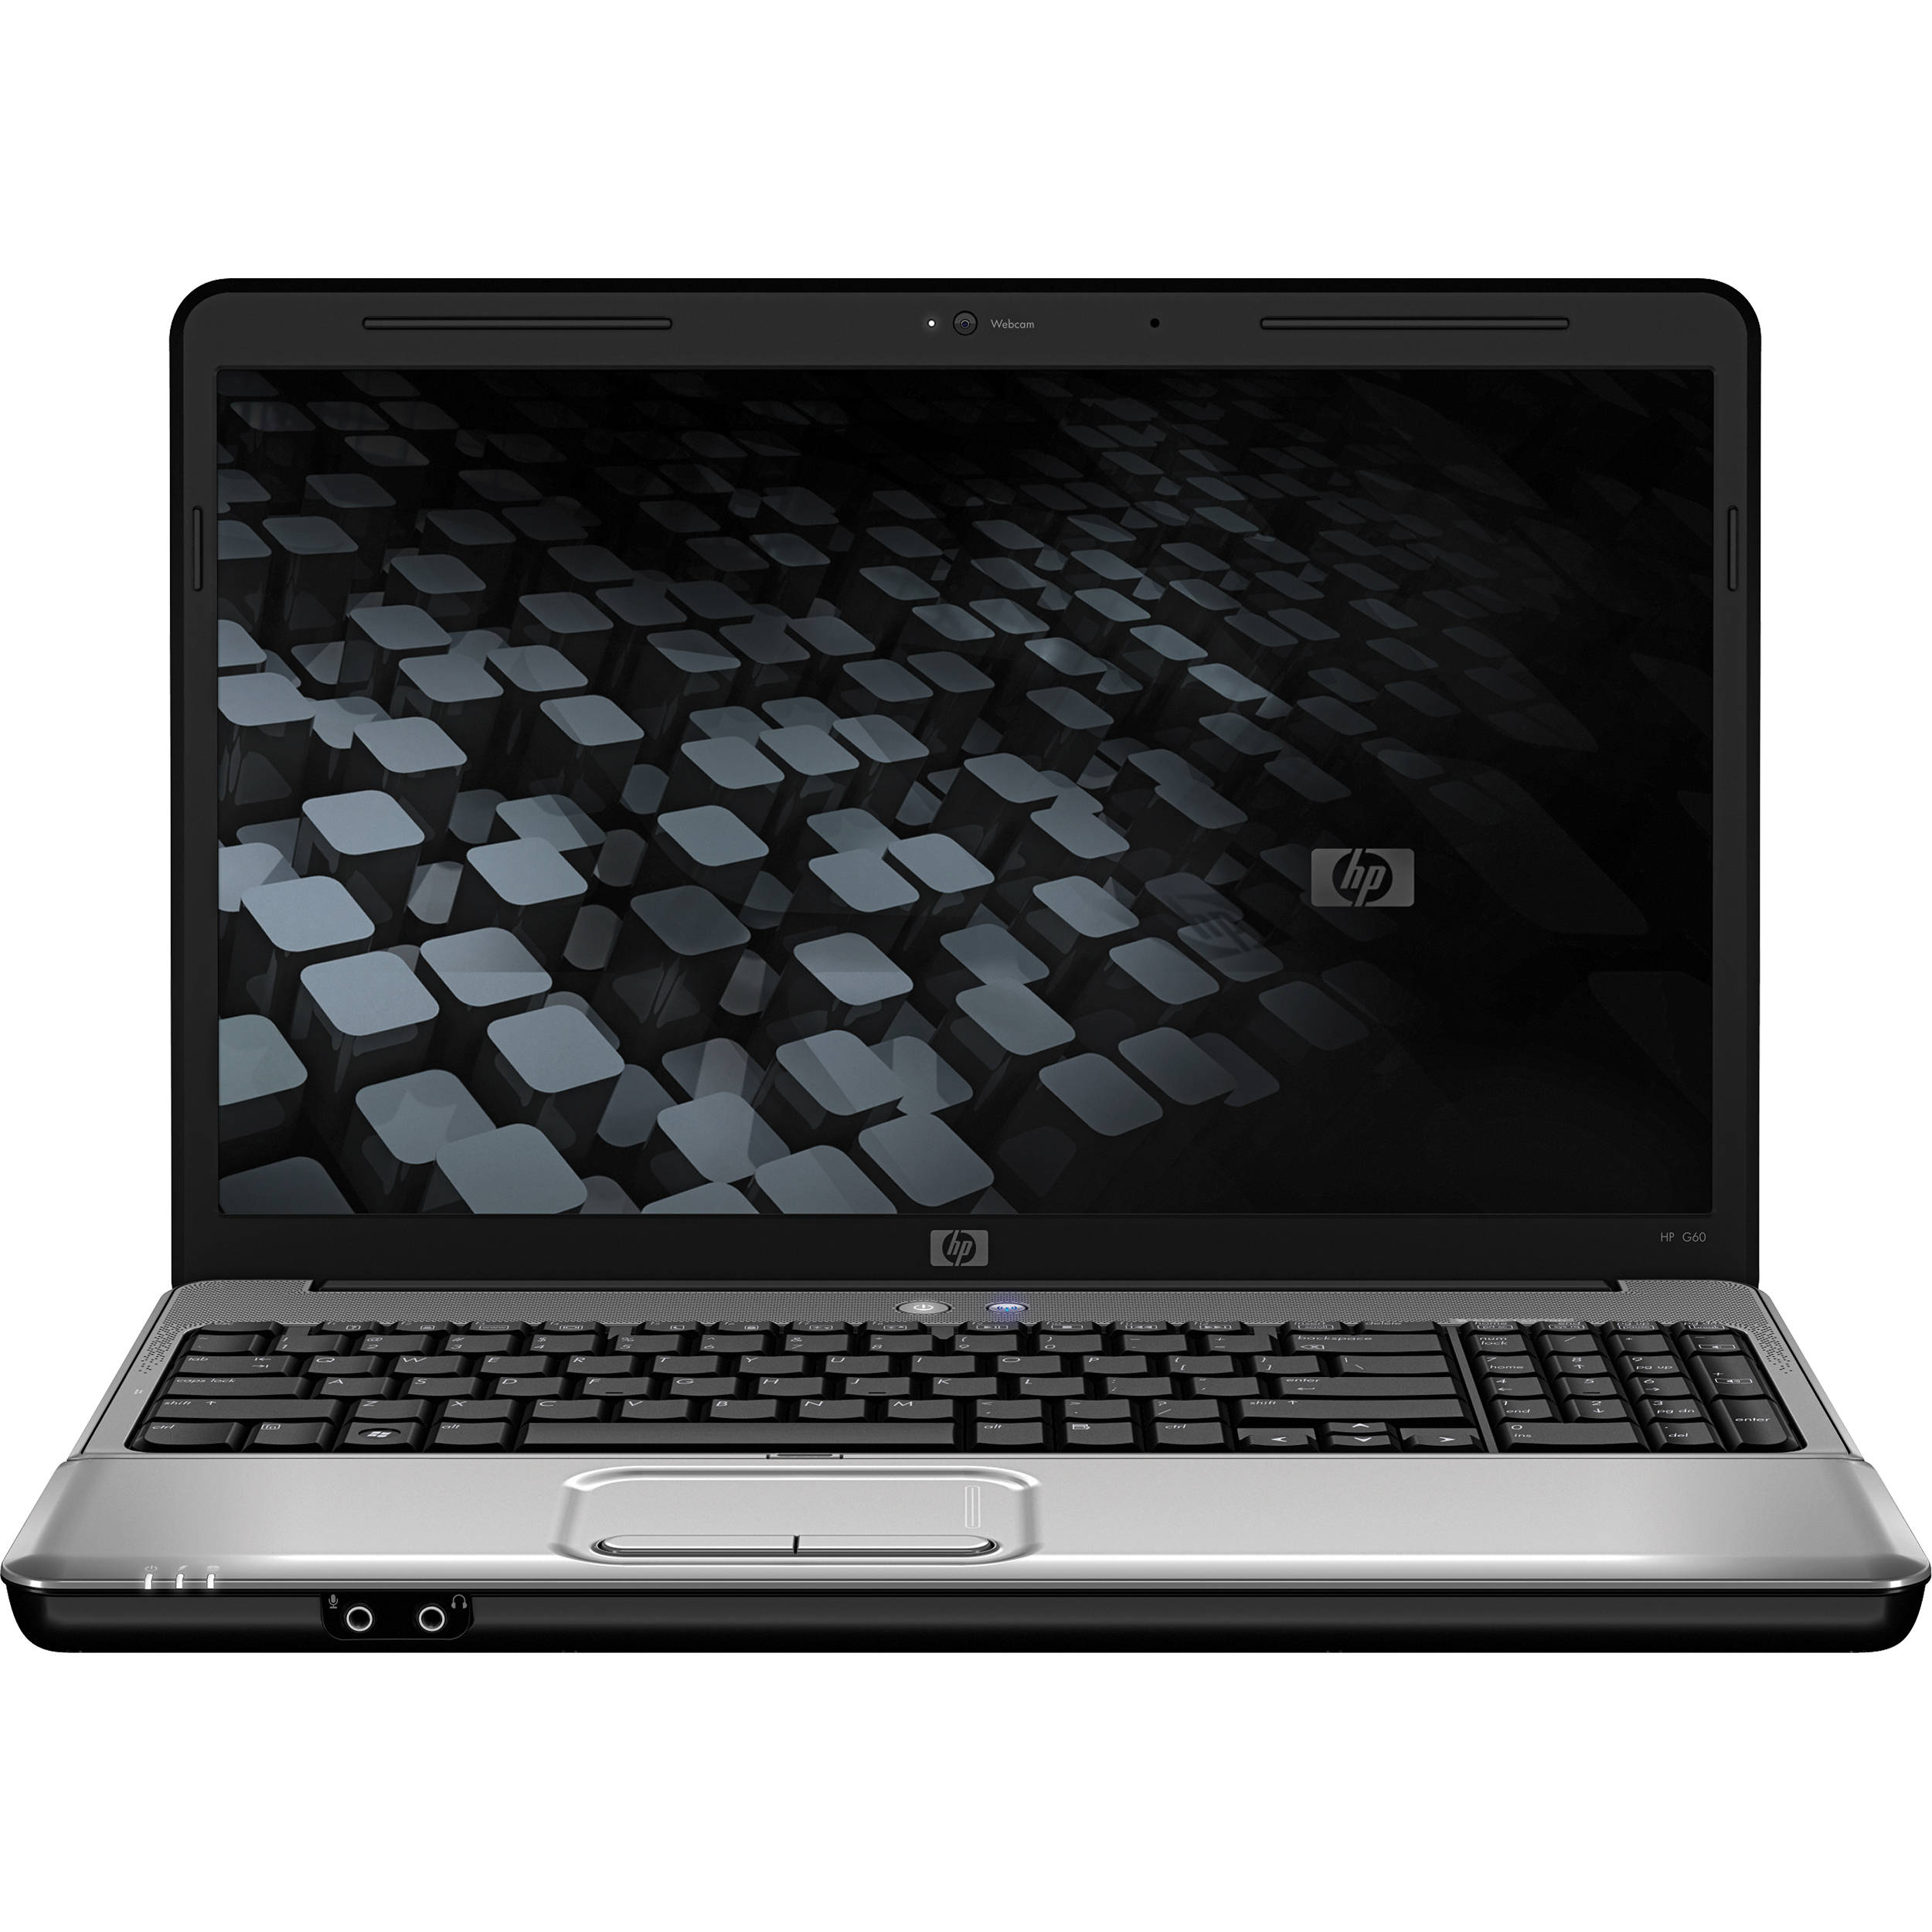 HP G60-530US Notebook Intel PRO/WLAN Drivers (2019)